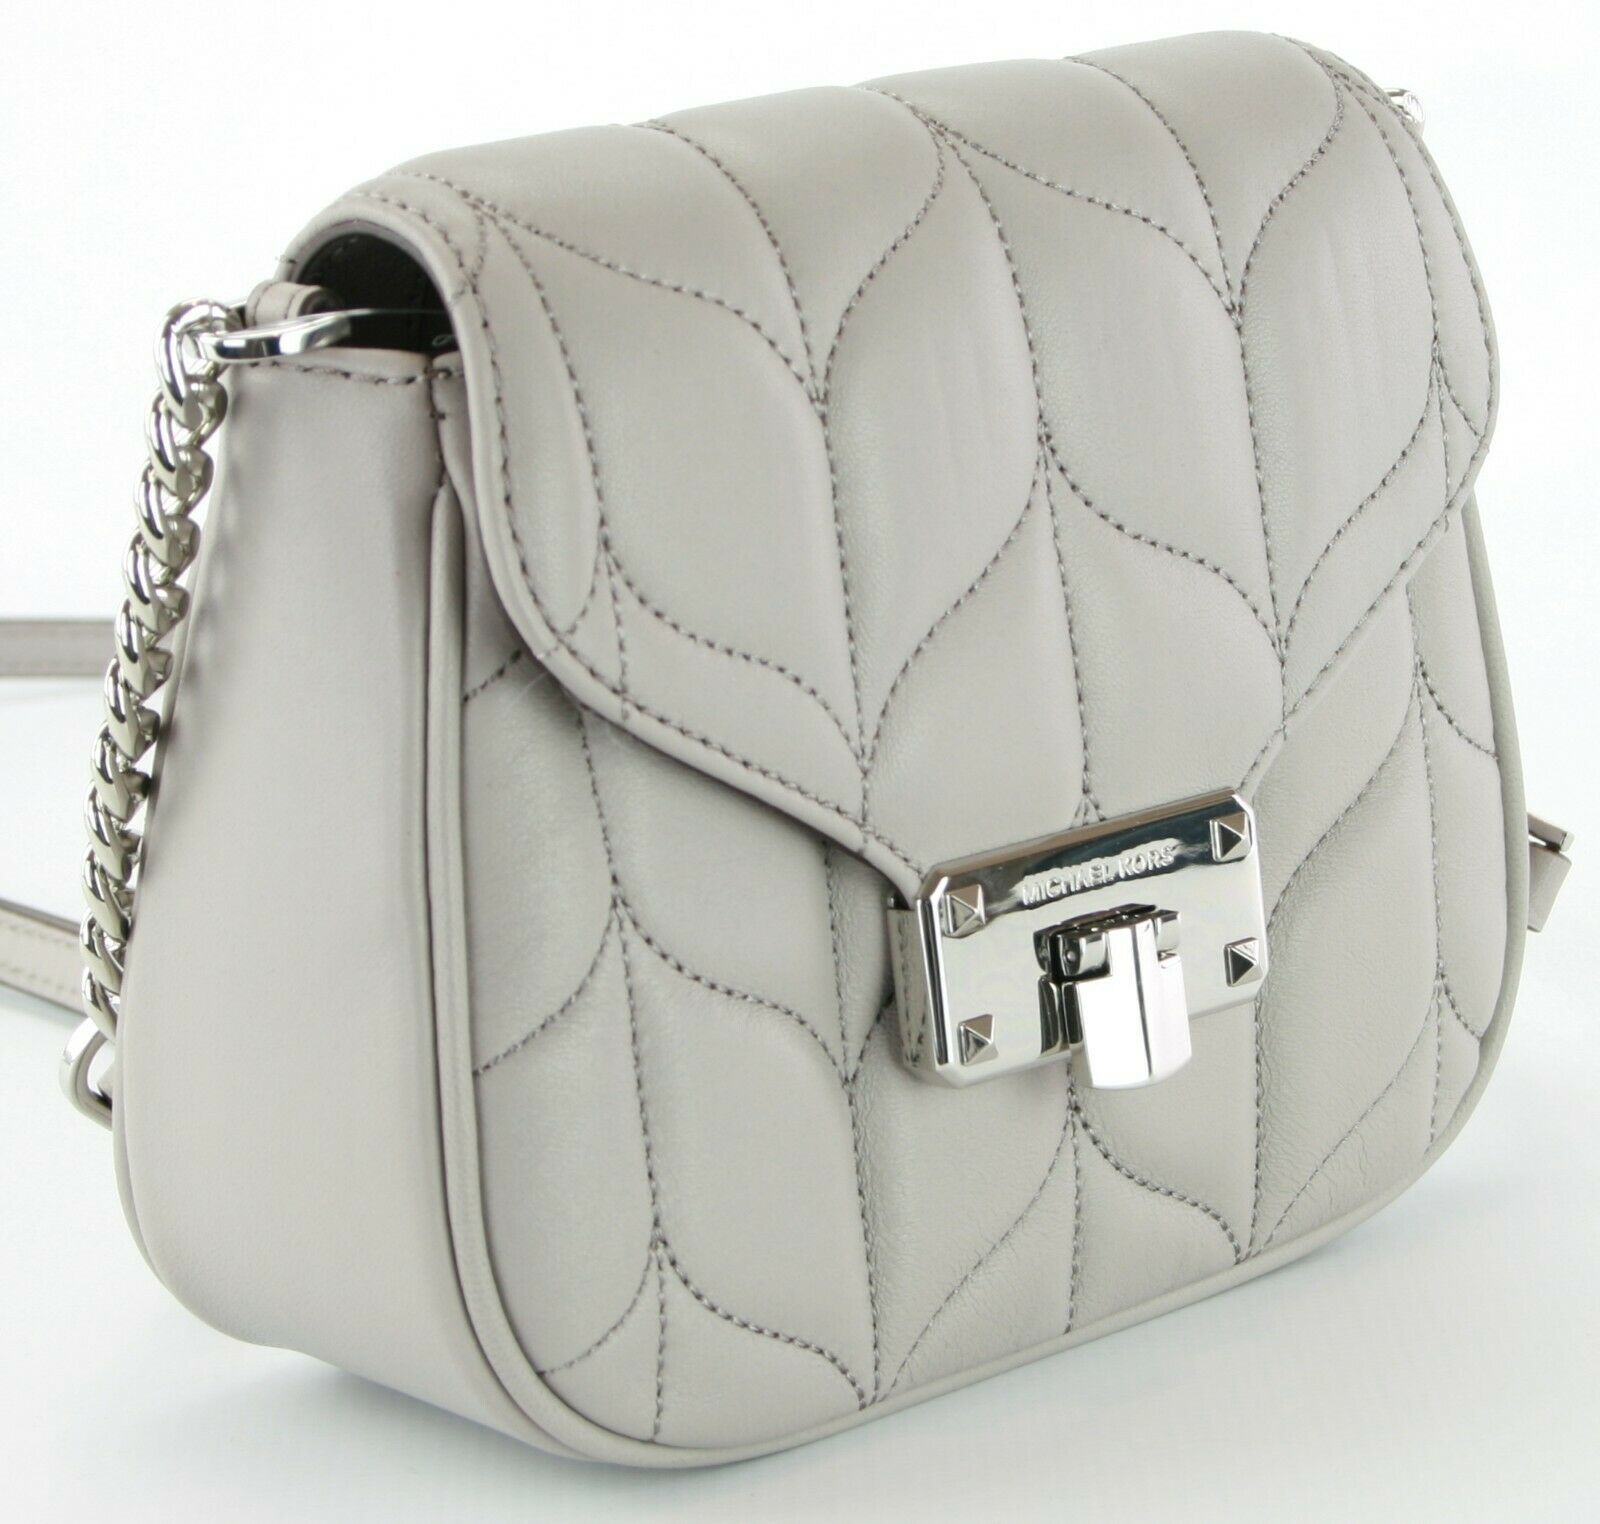 Michael Kors Peyton Quilted Leather Cross Body Bag Small Handbag Grey RRP £270